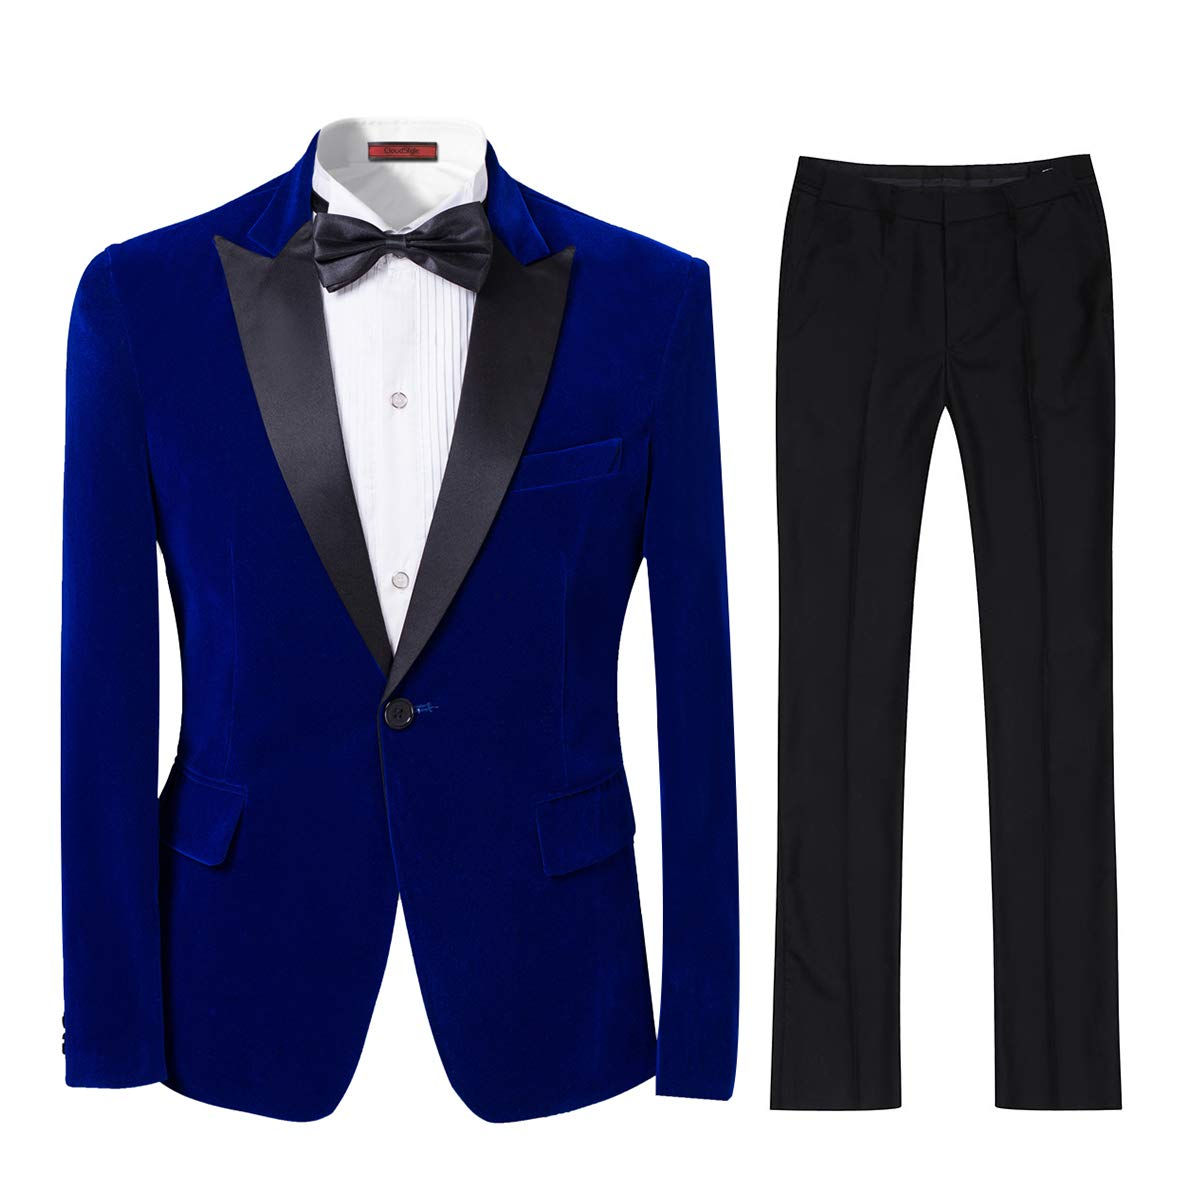 Men's Notched Lapel One-Button TUXEDO Casual Blazer Suit Slim Fit 2-piece Set, Blue, M by Cloudstyle